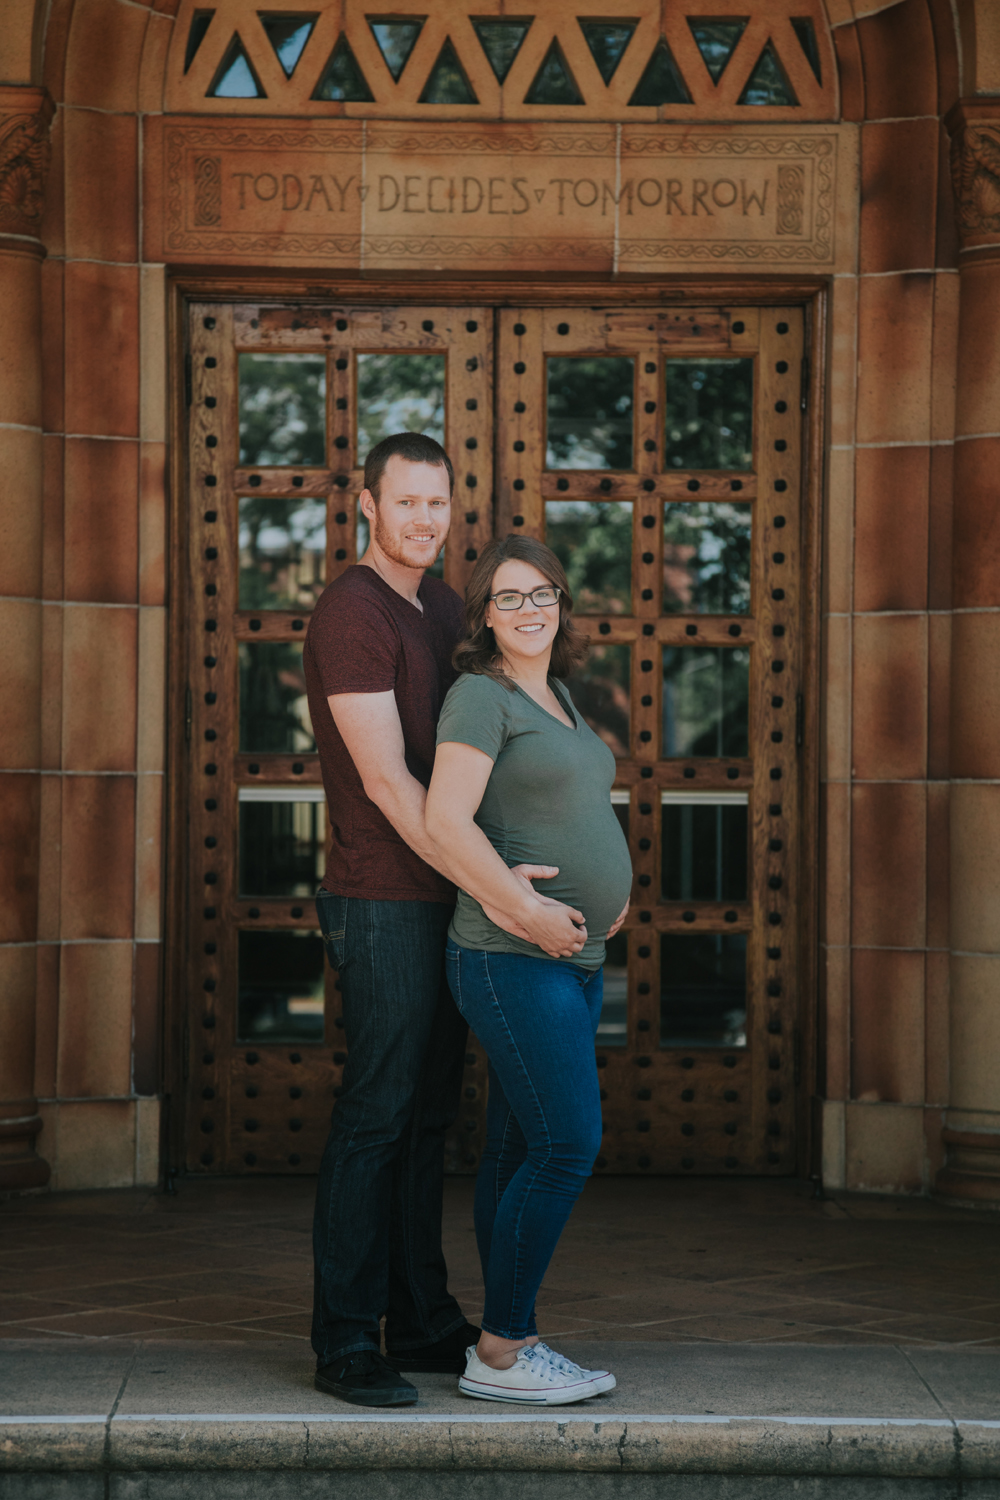 Downtown-Chico-and-Upper-Bidwell-Park-Maternity-photos09.jpg